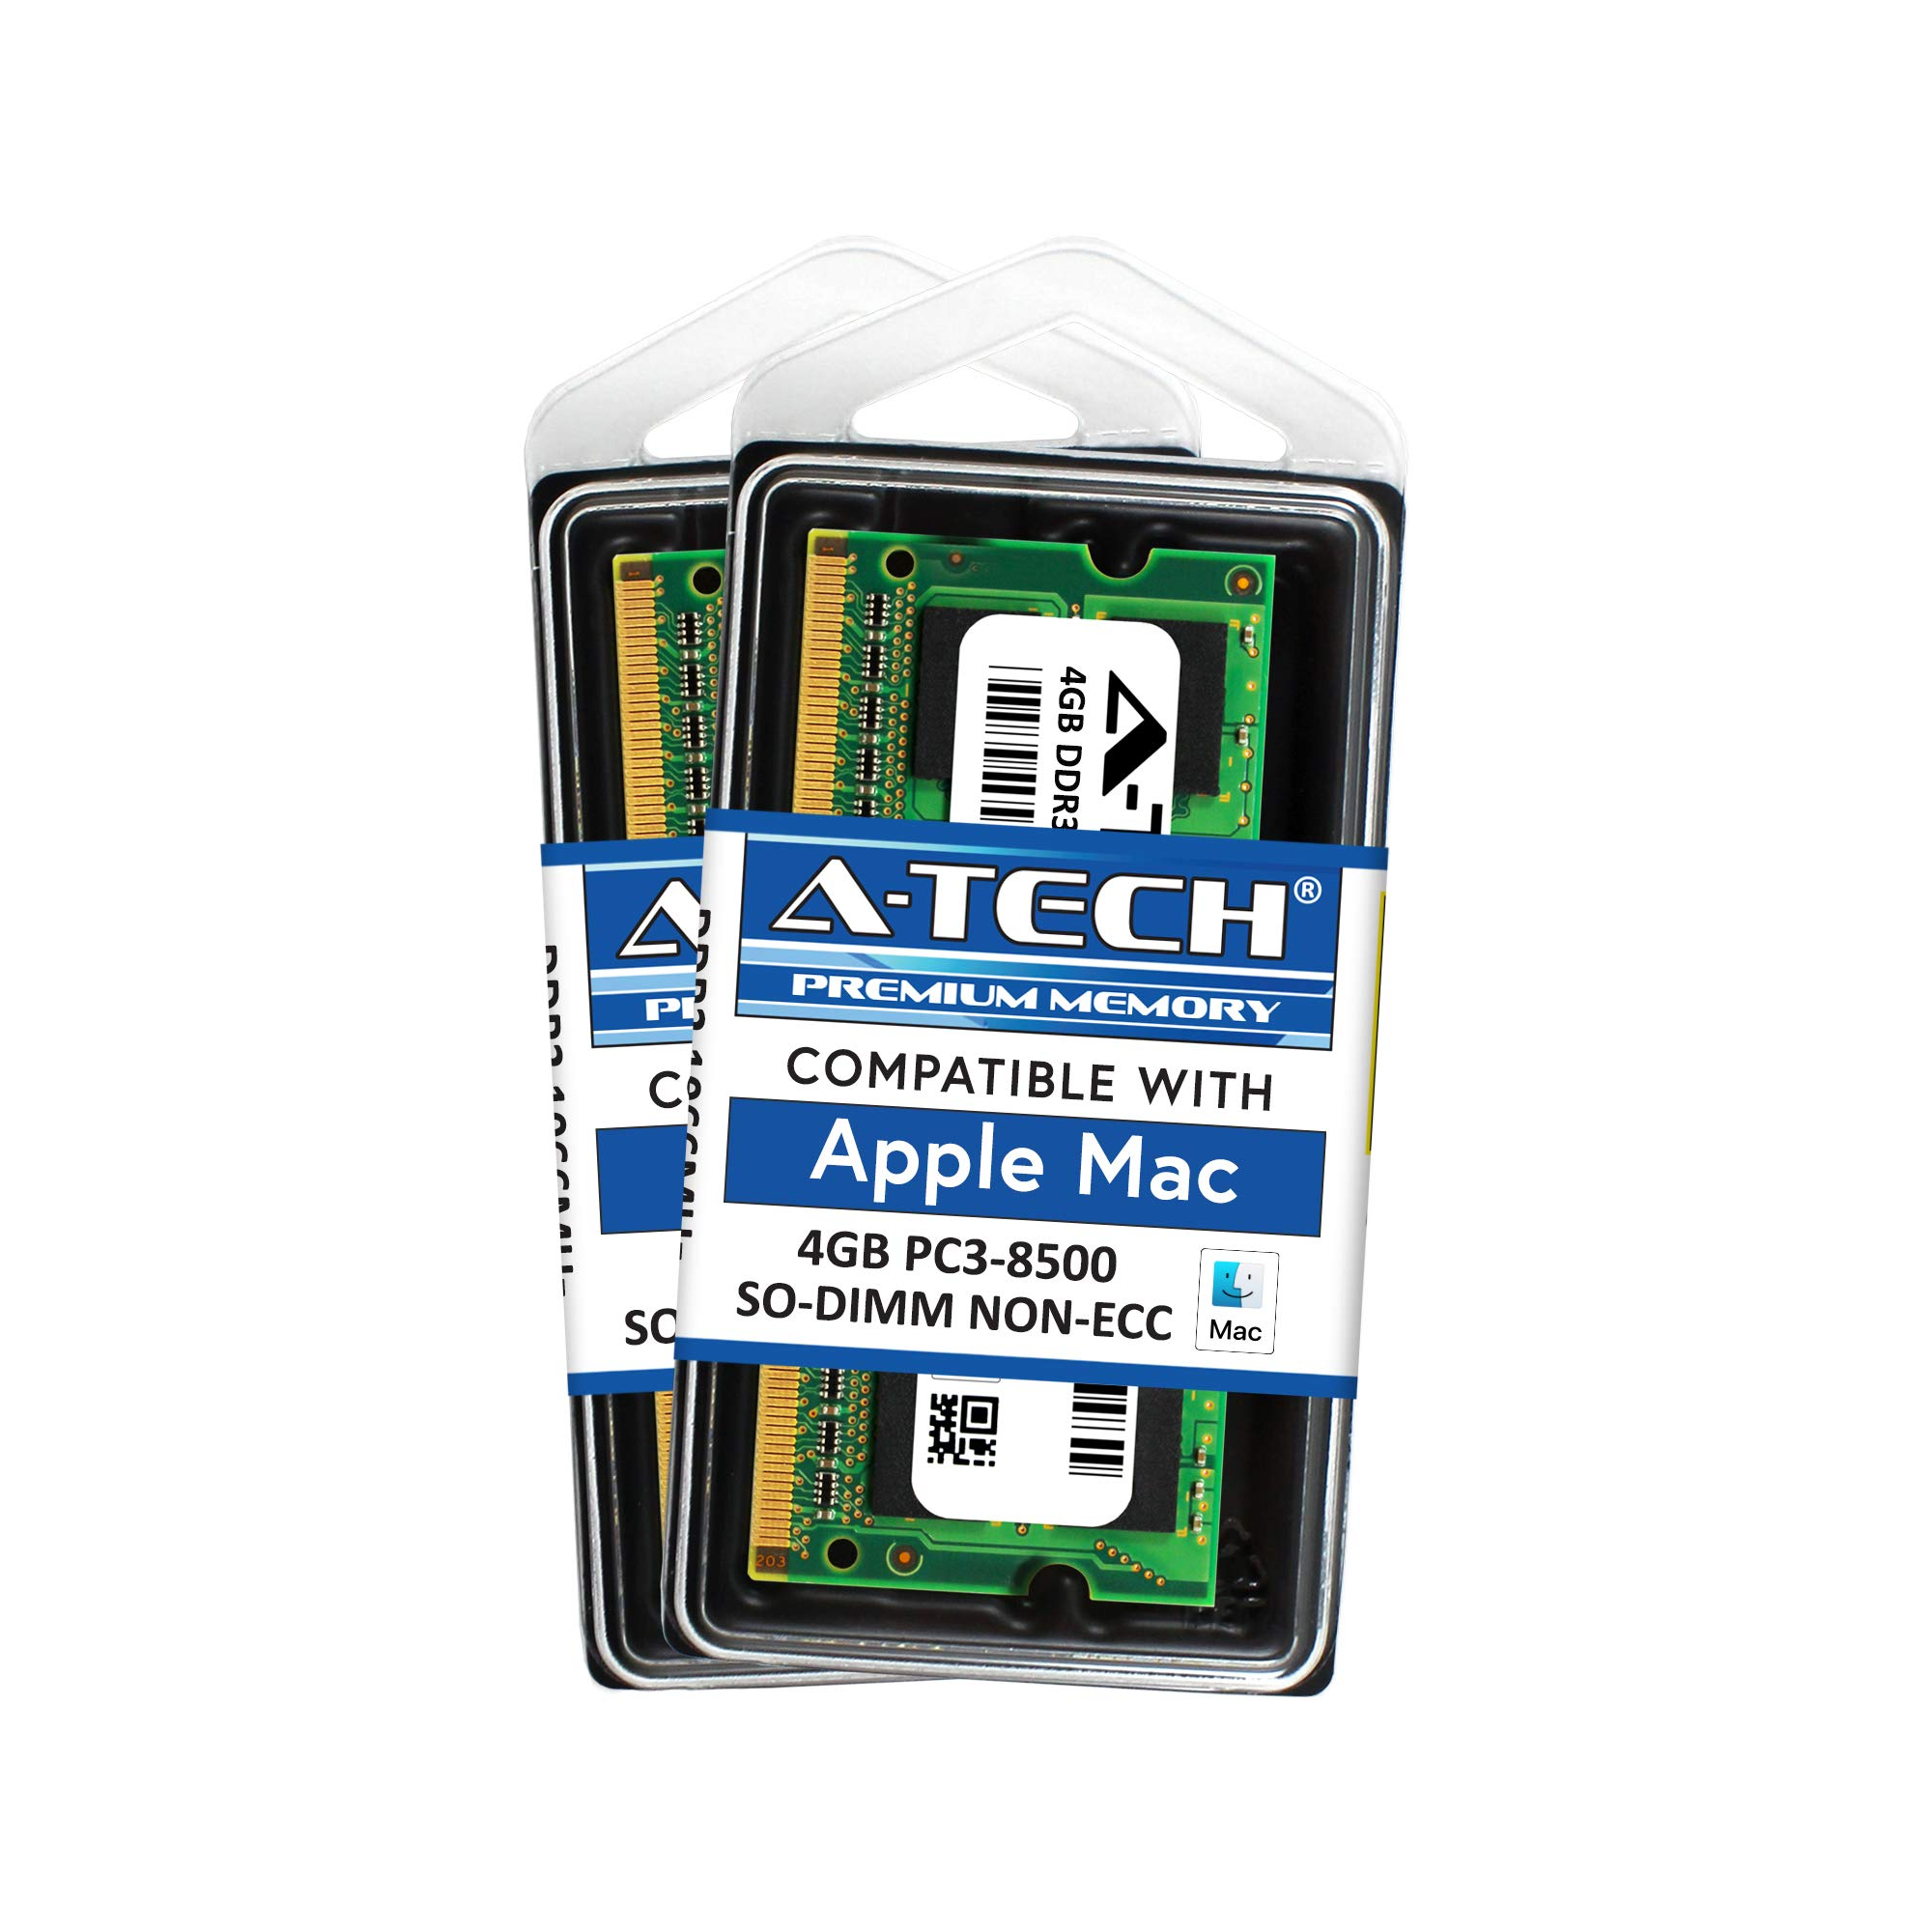 Memoria Ram 8gb A-tech Para Apple Kit (2x 4gb) Ddr3 1067mhz / 1066mhz Pc3-8500 Sodimm Macbook Macbook Pro iMac Mac Mini